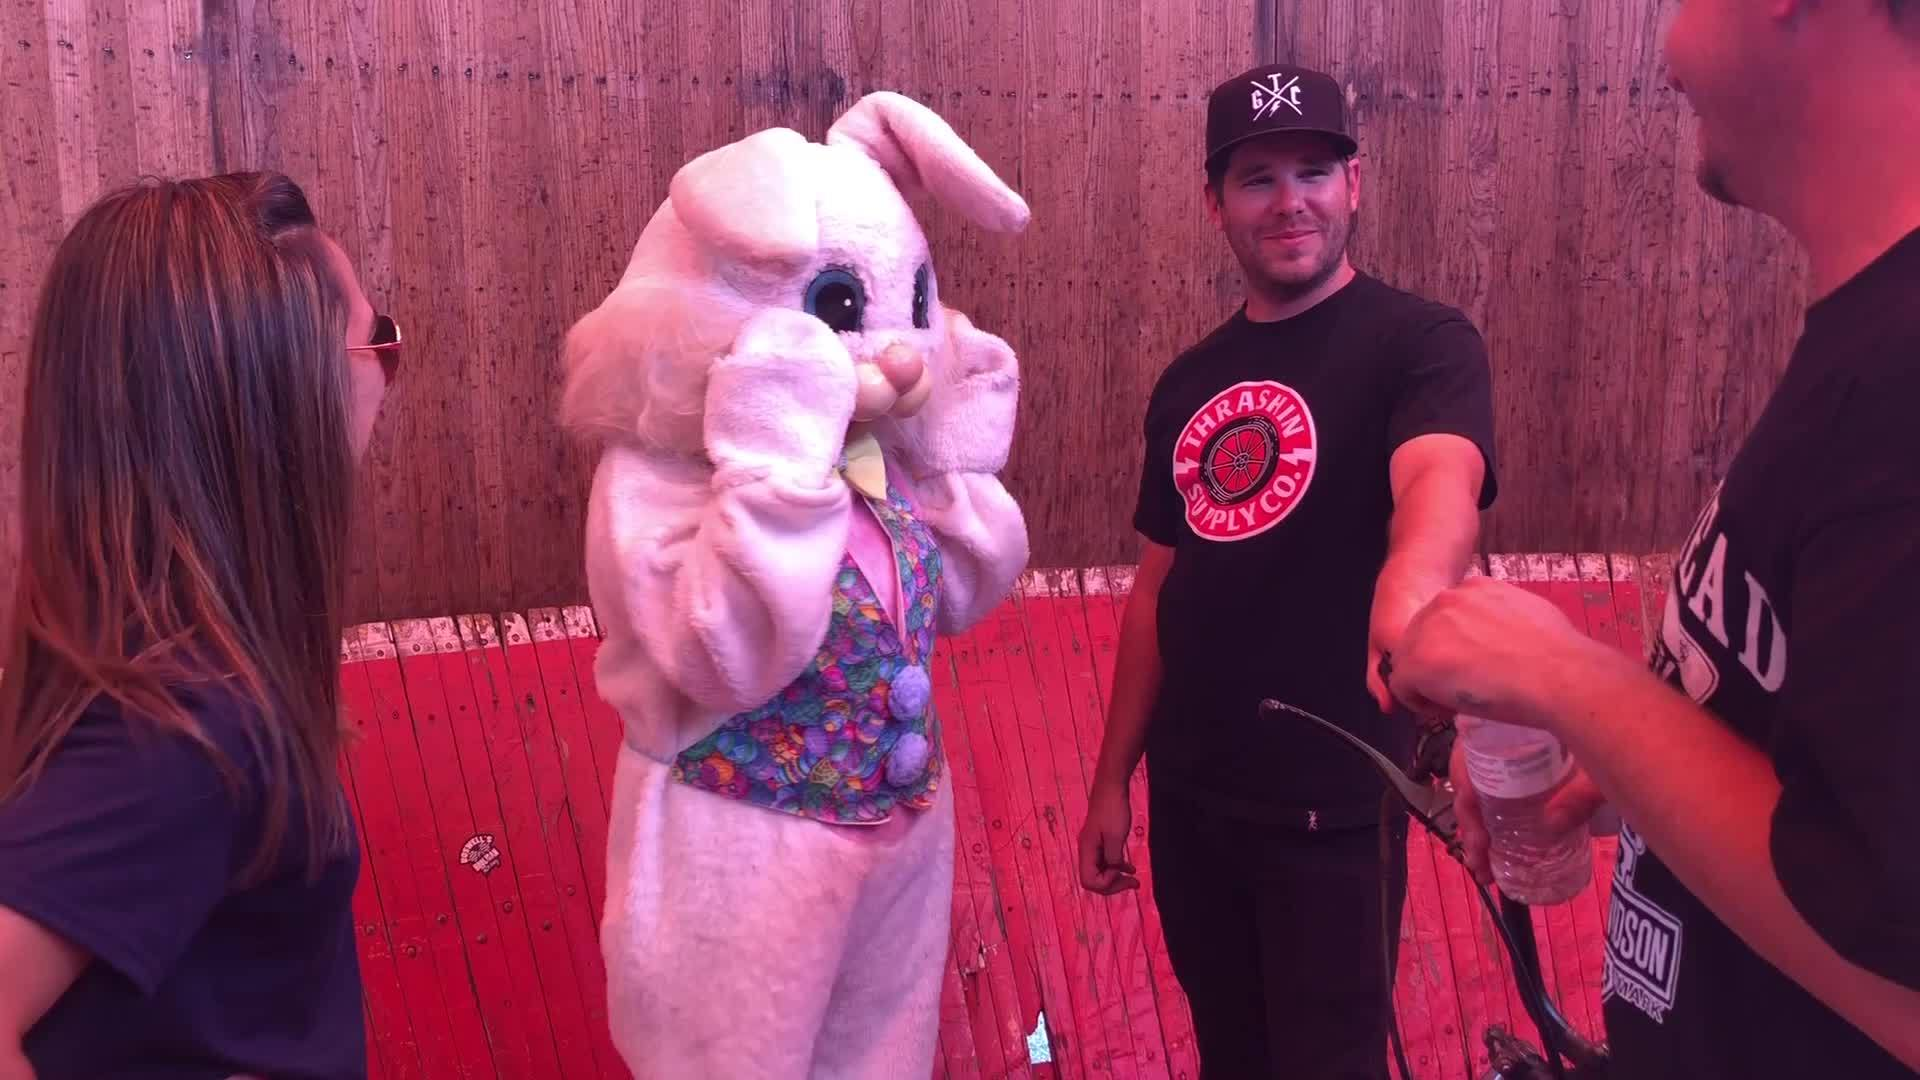 The Easter Bunny and the Wall of Death